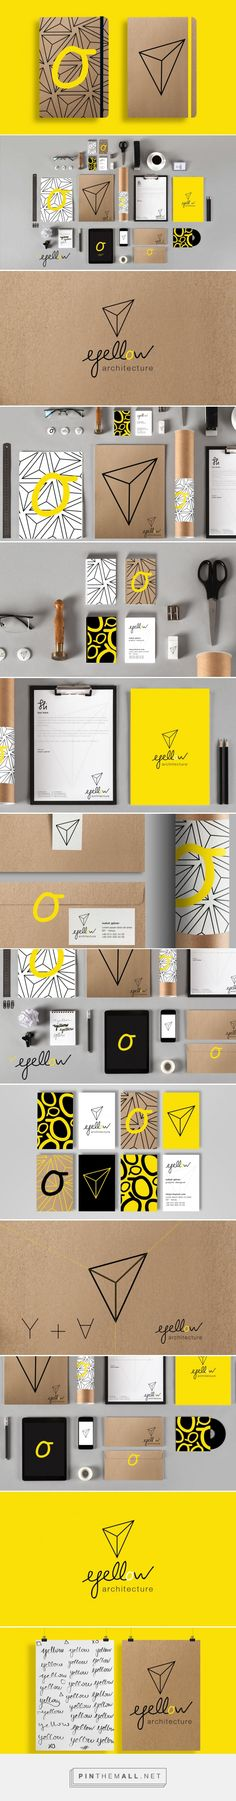 Yellow Architecture Branding by Nuket Guner Corlan Fivestar Branding – Design and Branding Agency & Inspiration Gallery Web Design, Logo Design, Brand Identity Design, Graphic Design Branding, Branding Agency, Business Branding, Business Card Design, Corporate Design, Corporate Identity